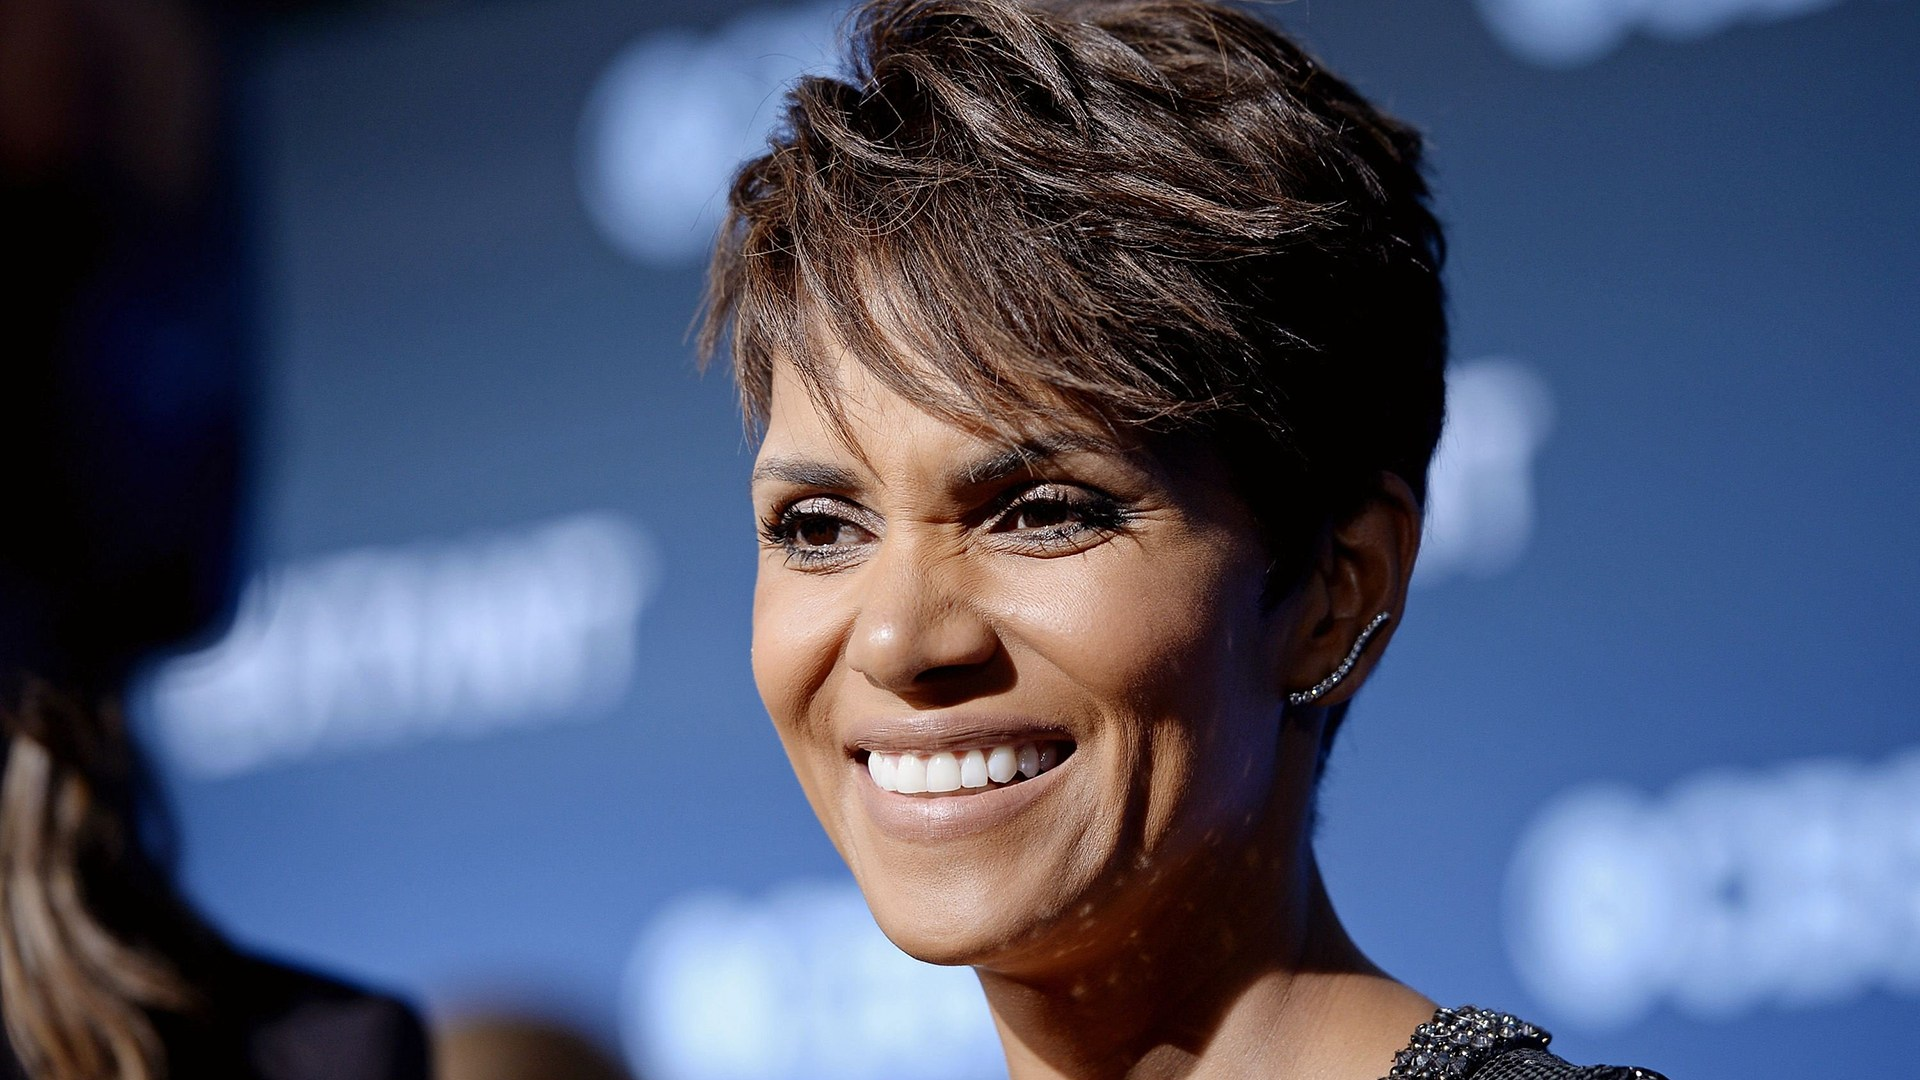 """Image: Cast member Halle Berry smiles during interview at premiere of TV series """"Extant"""" in Los Angeles"""